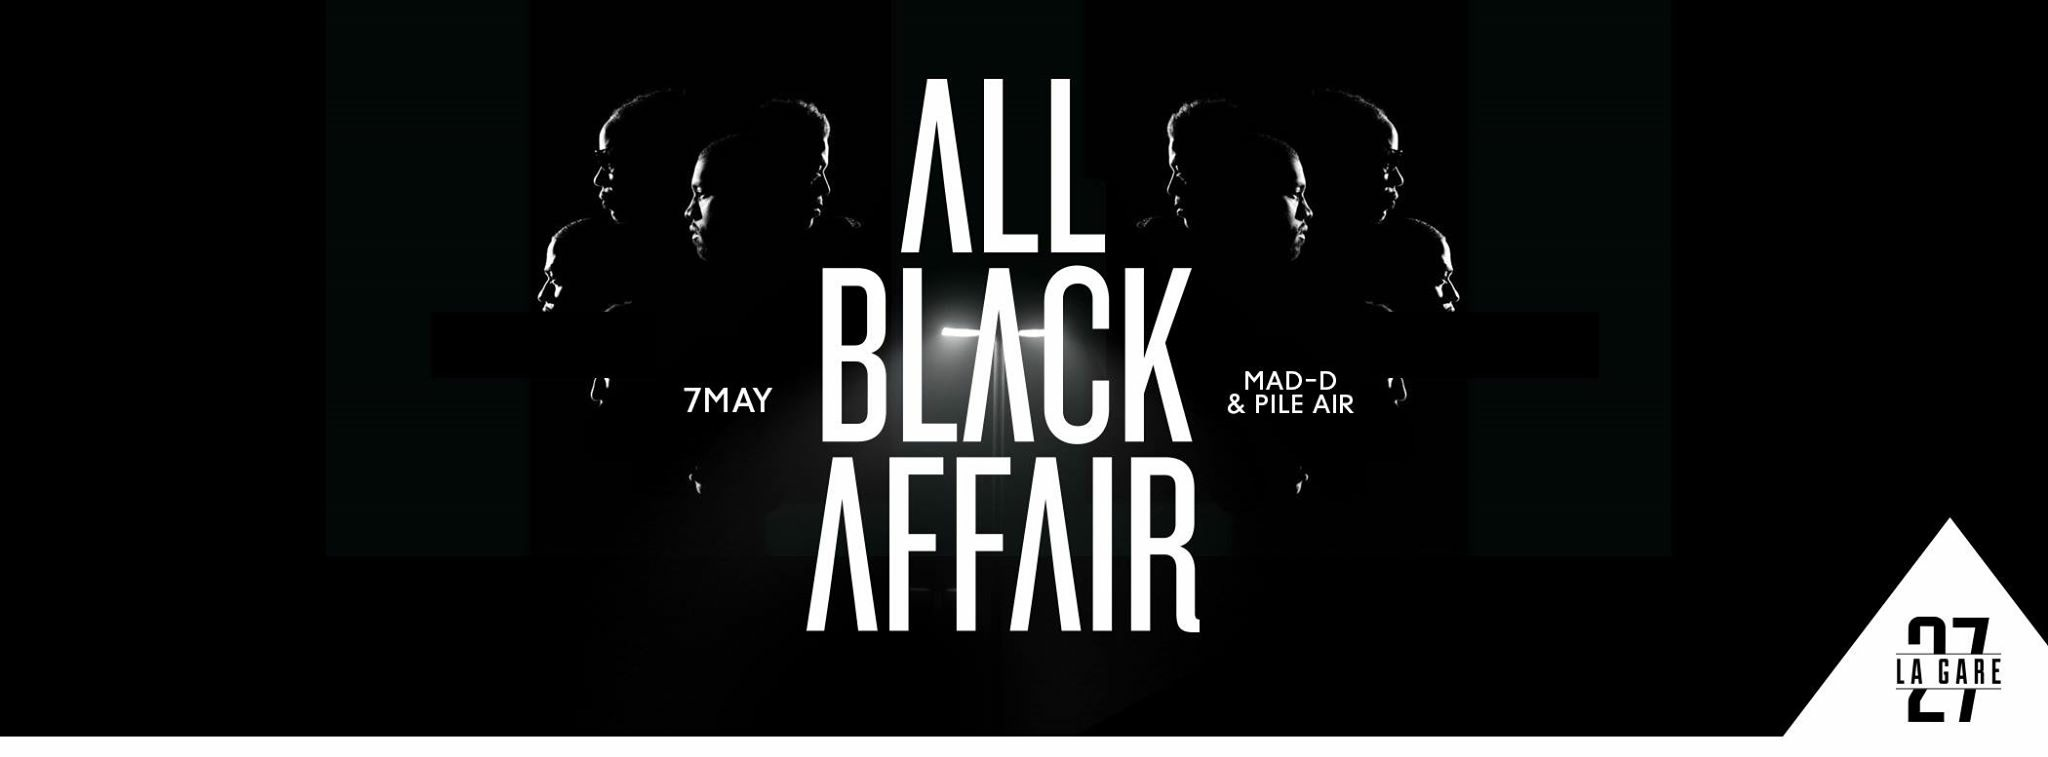 all black affair 7 may 2016 la gare 27 antwerpen line up mad d